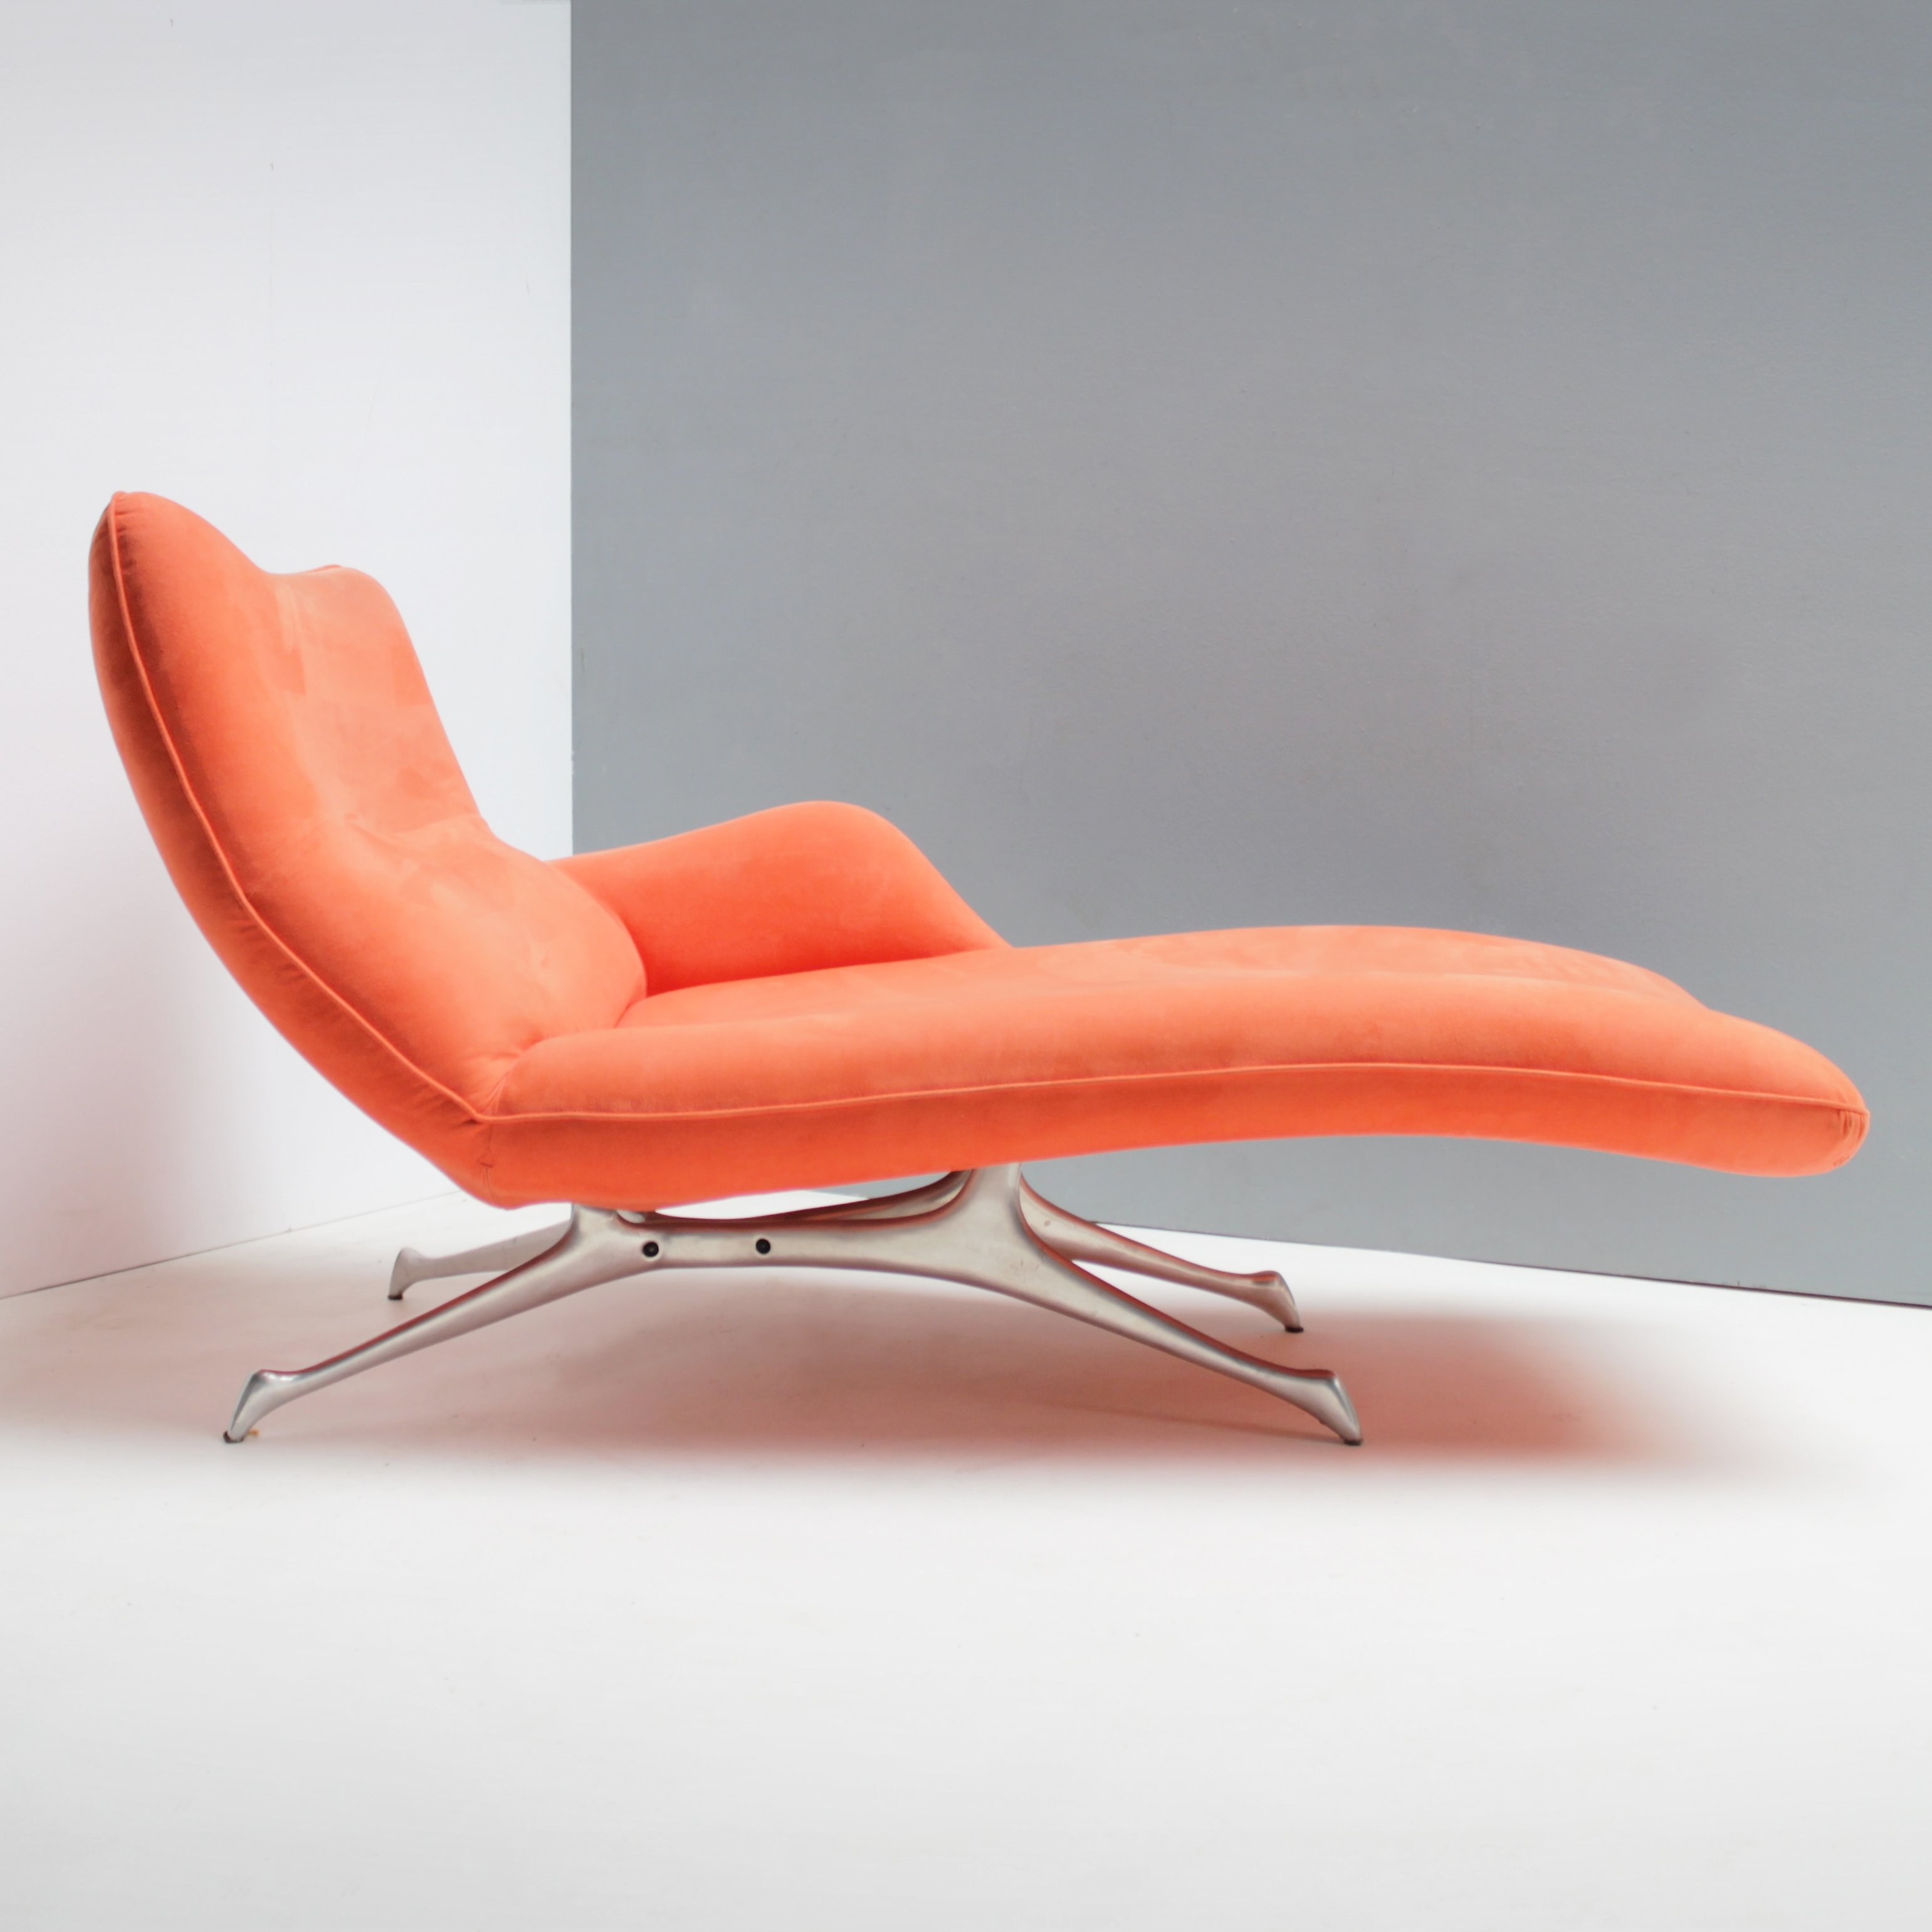 Vladimir Kagan Chaise Lounge For The New York Collection